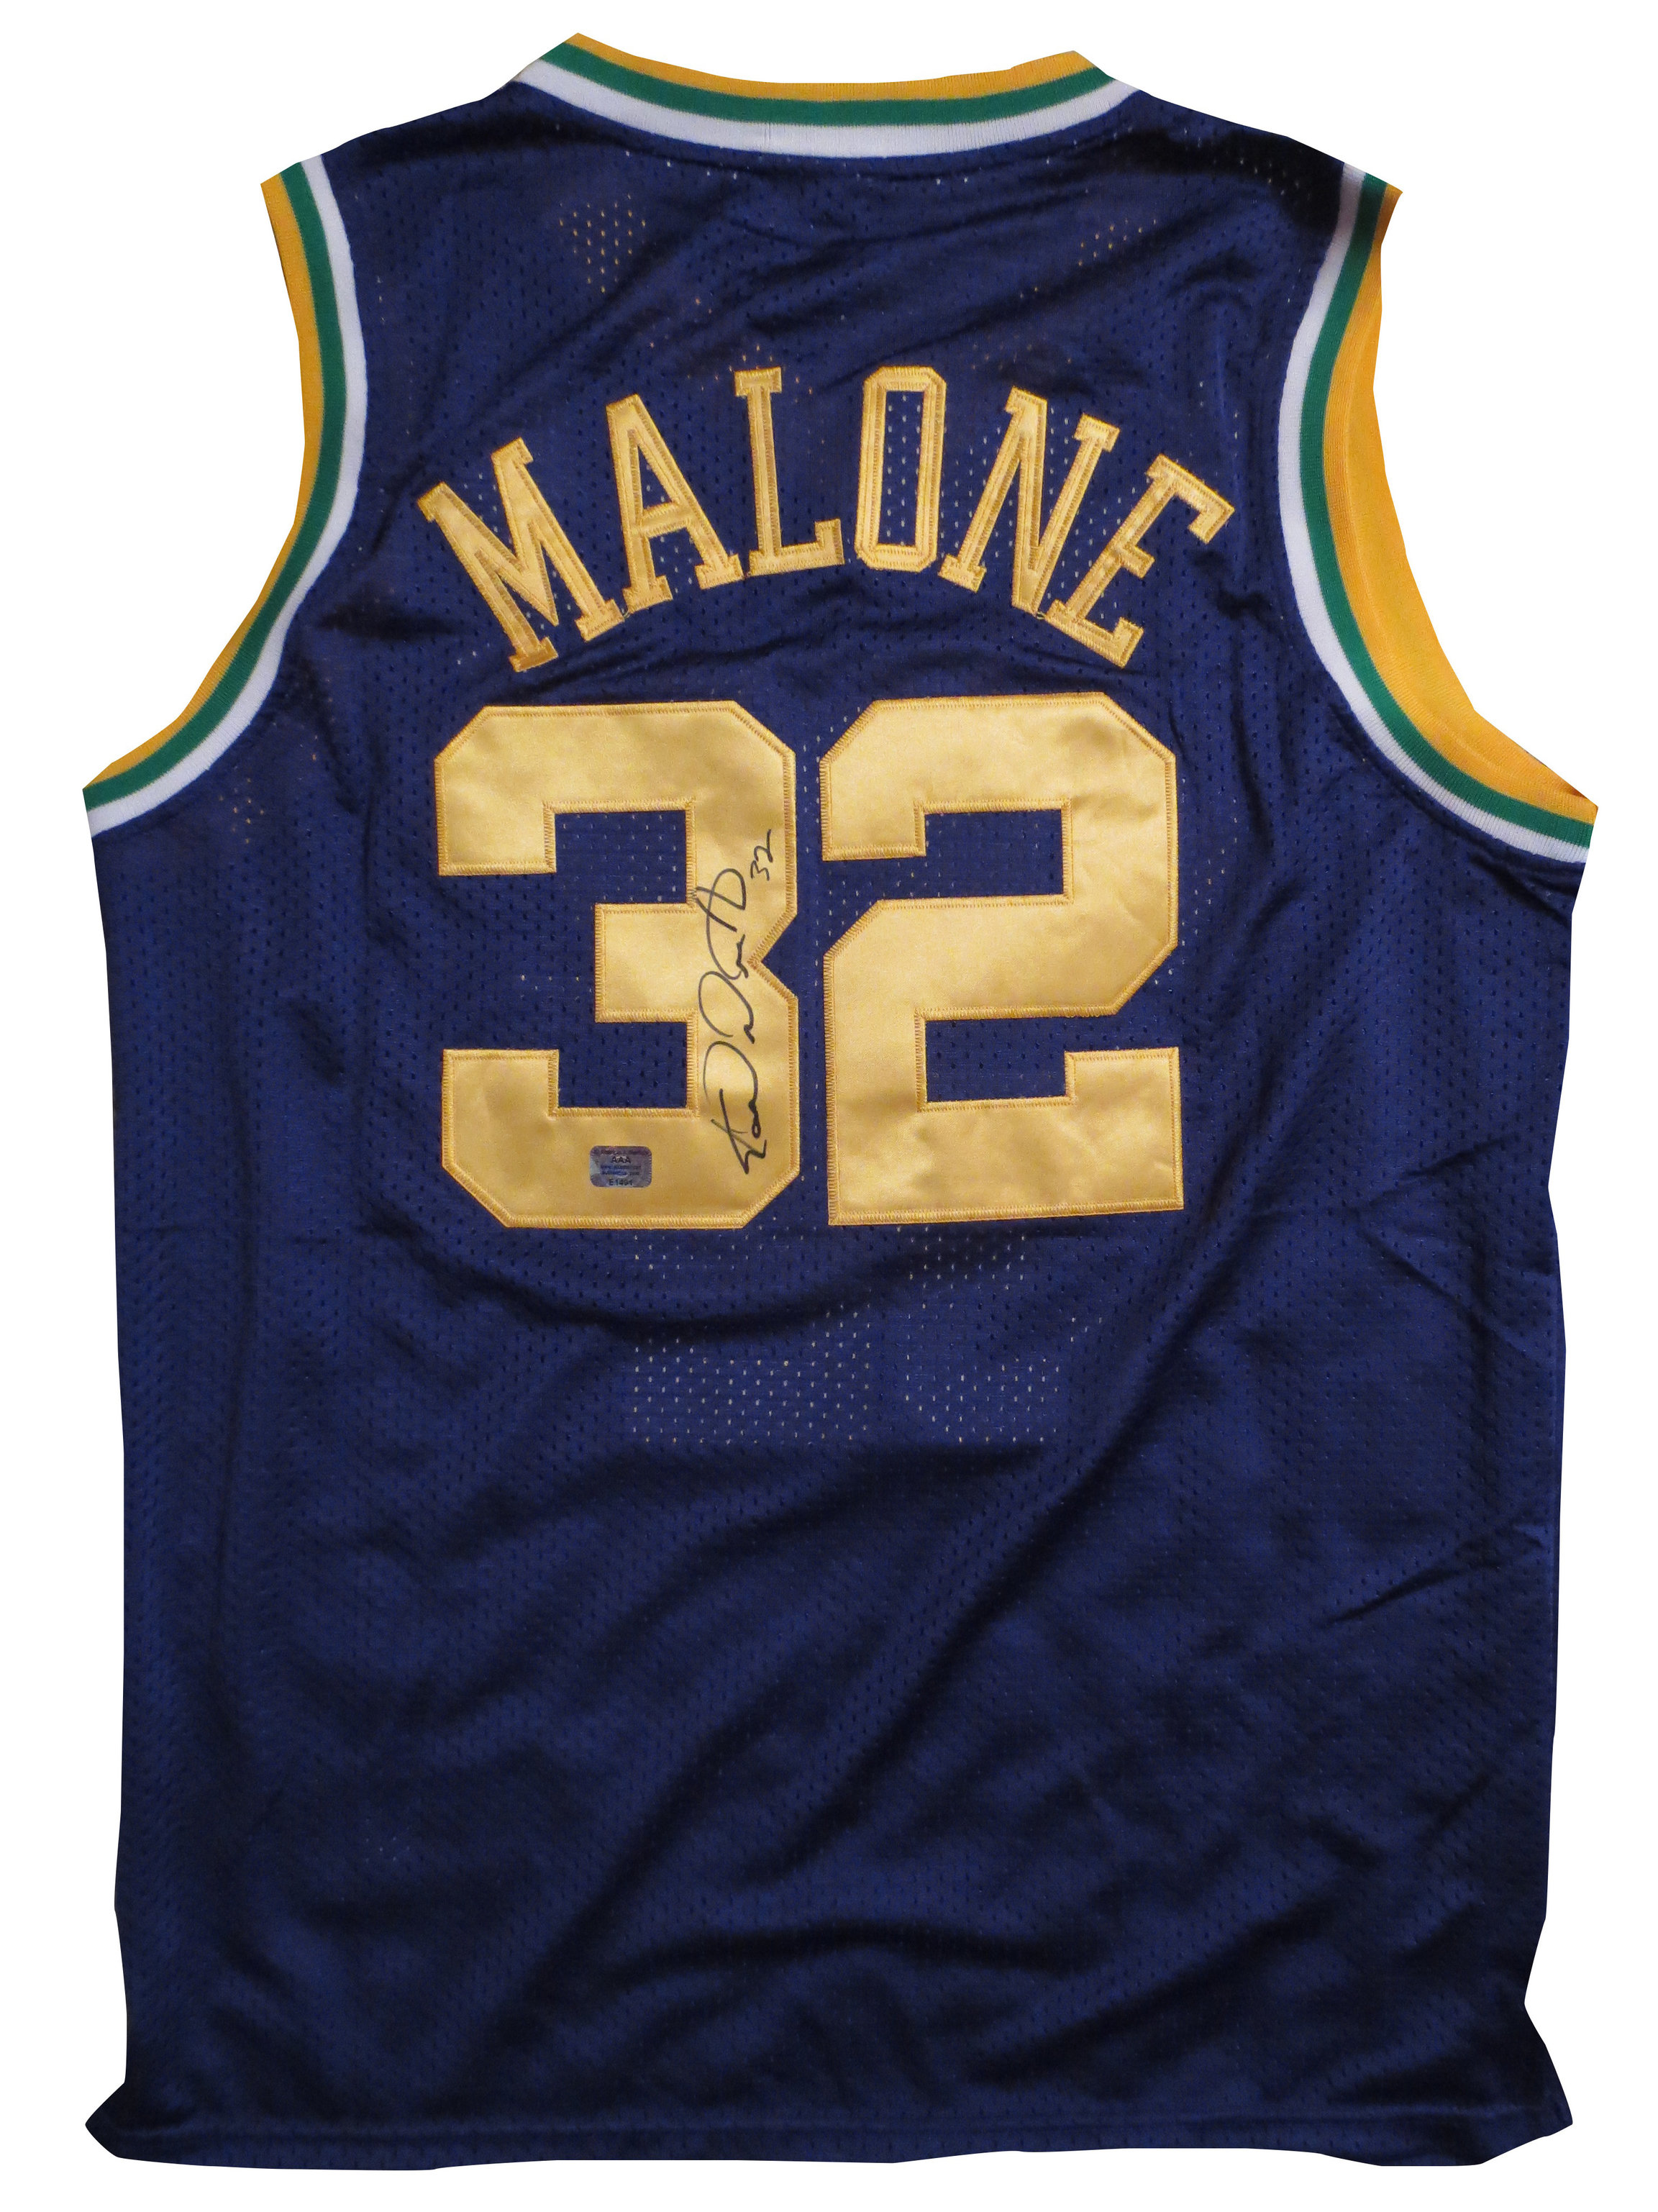 reputable site 85b1d 70ce0 Karl Malone Signed Jersey from Powers Autographs